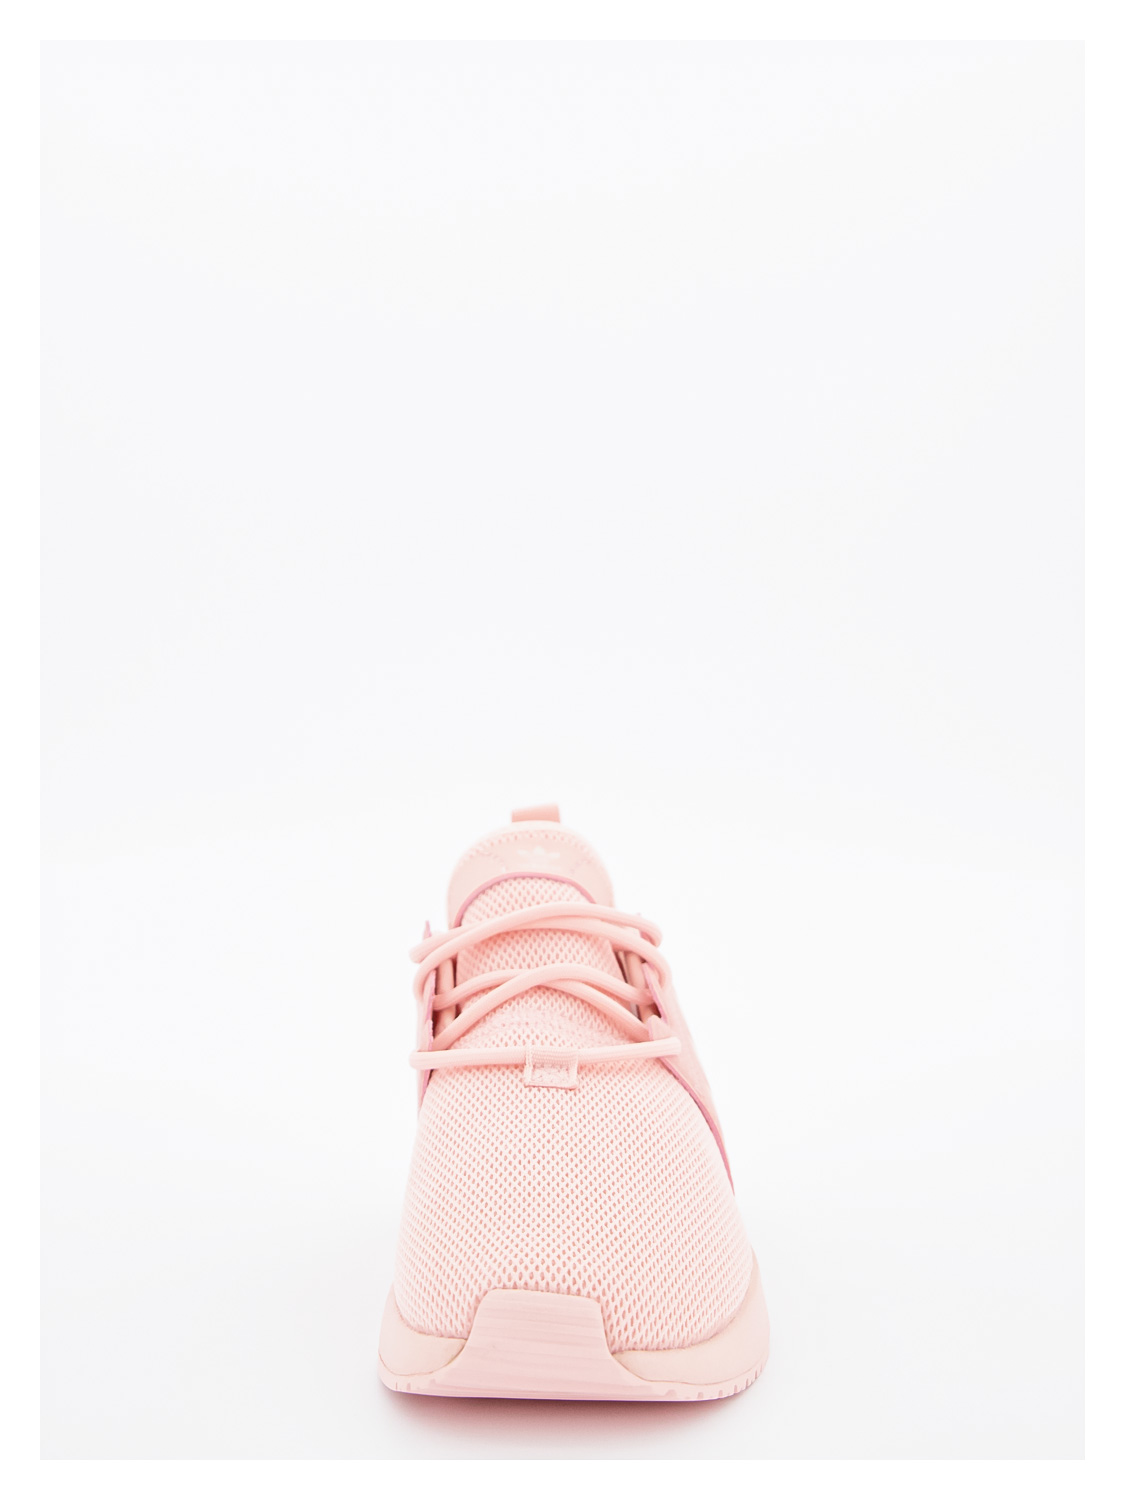 ADIDAS sneakers X_PLR pink for girls|